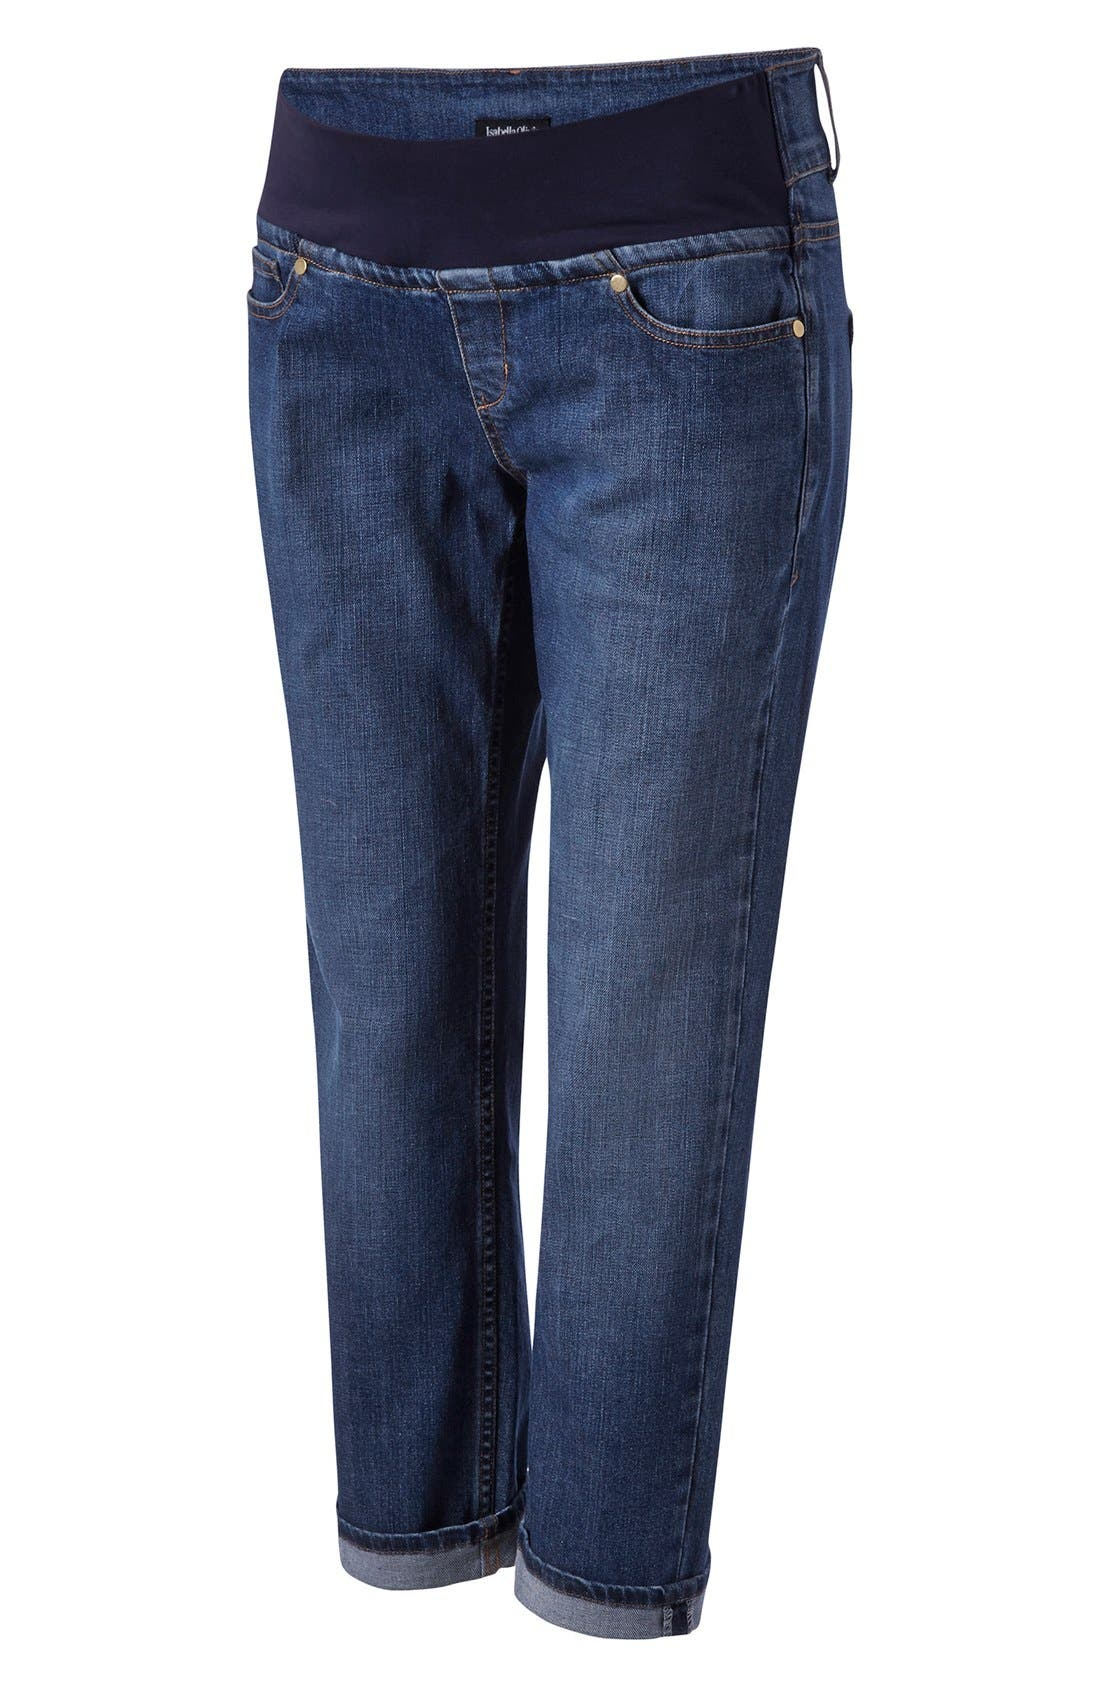 Relaxed Maternity Jeans,                             Main thumbnail 1, color,                             Washed Indigo